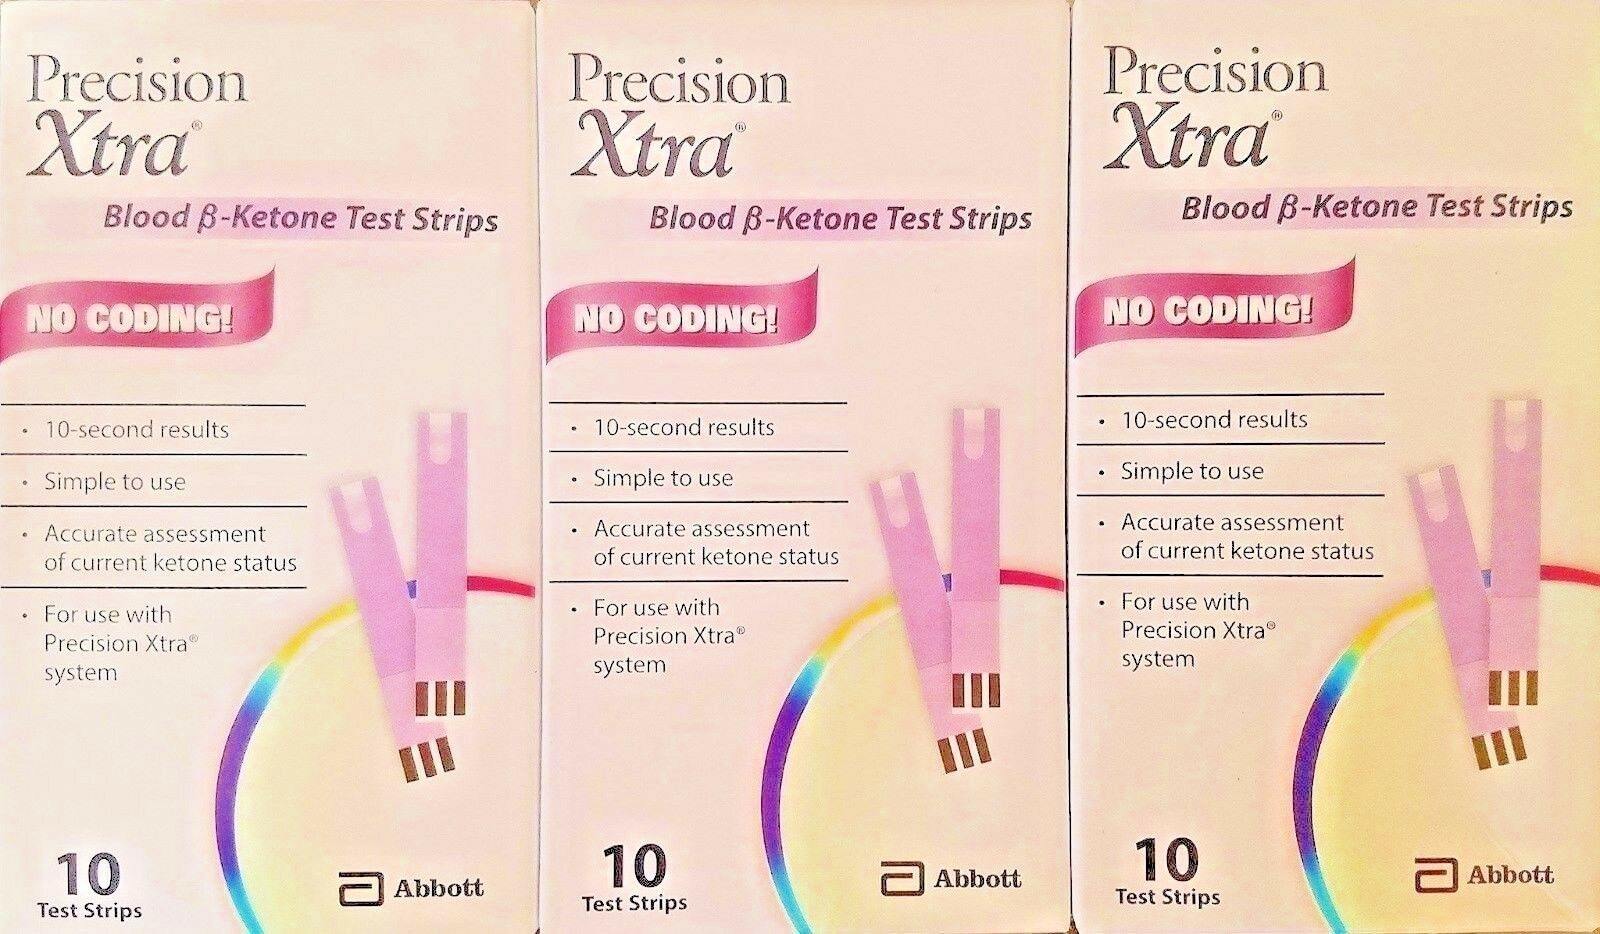 30 Blood Ketone Test Strips for Abbott Precision Xtra. EXP 1